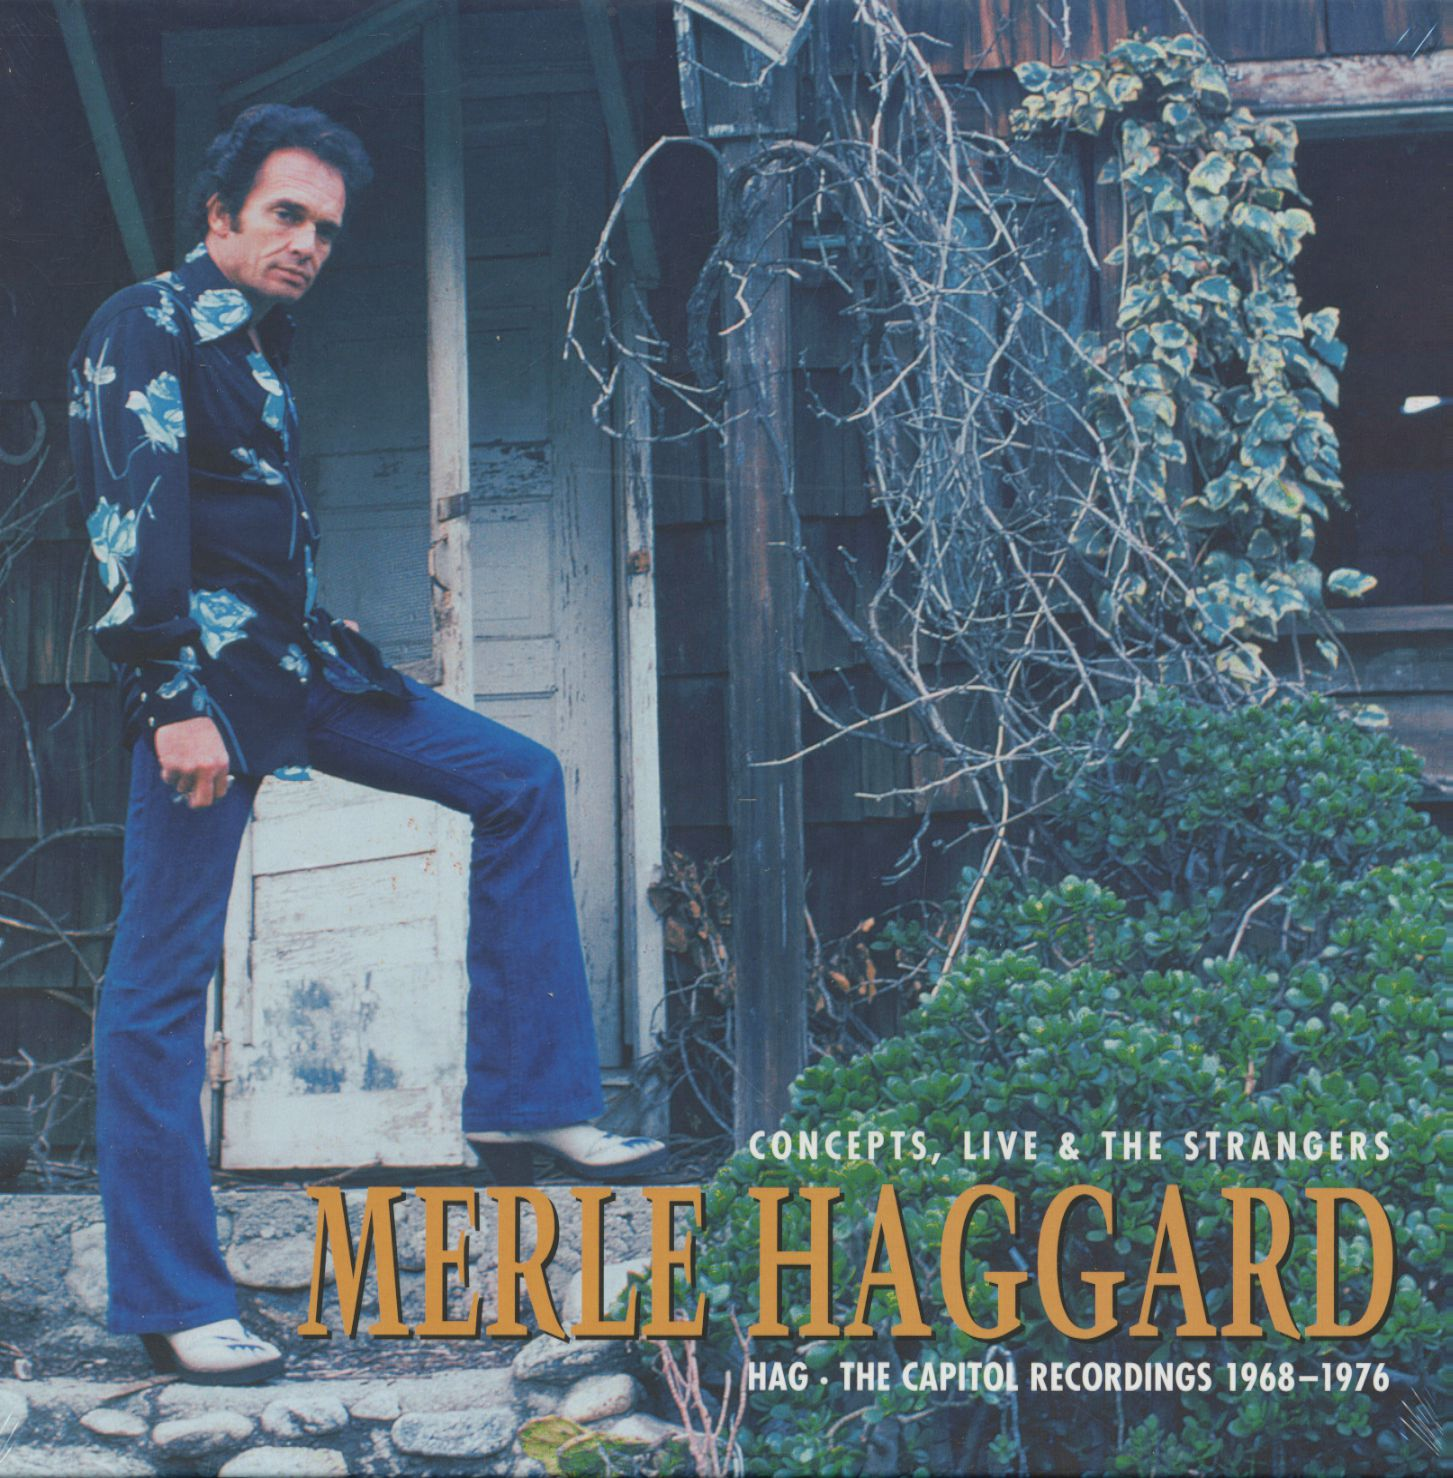 Merle Haggard Hag - Concepts, Live & The Strangers - The Capitol Recordings  (6-CD)